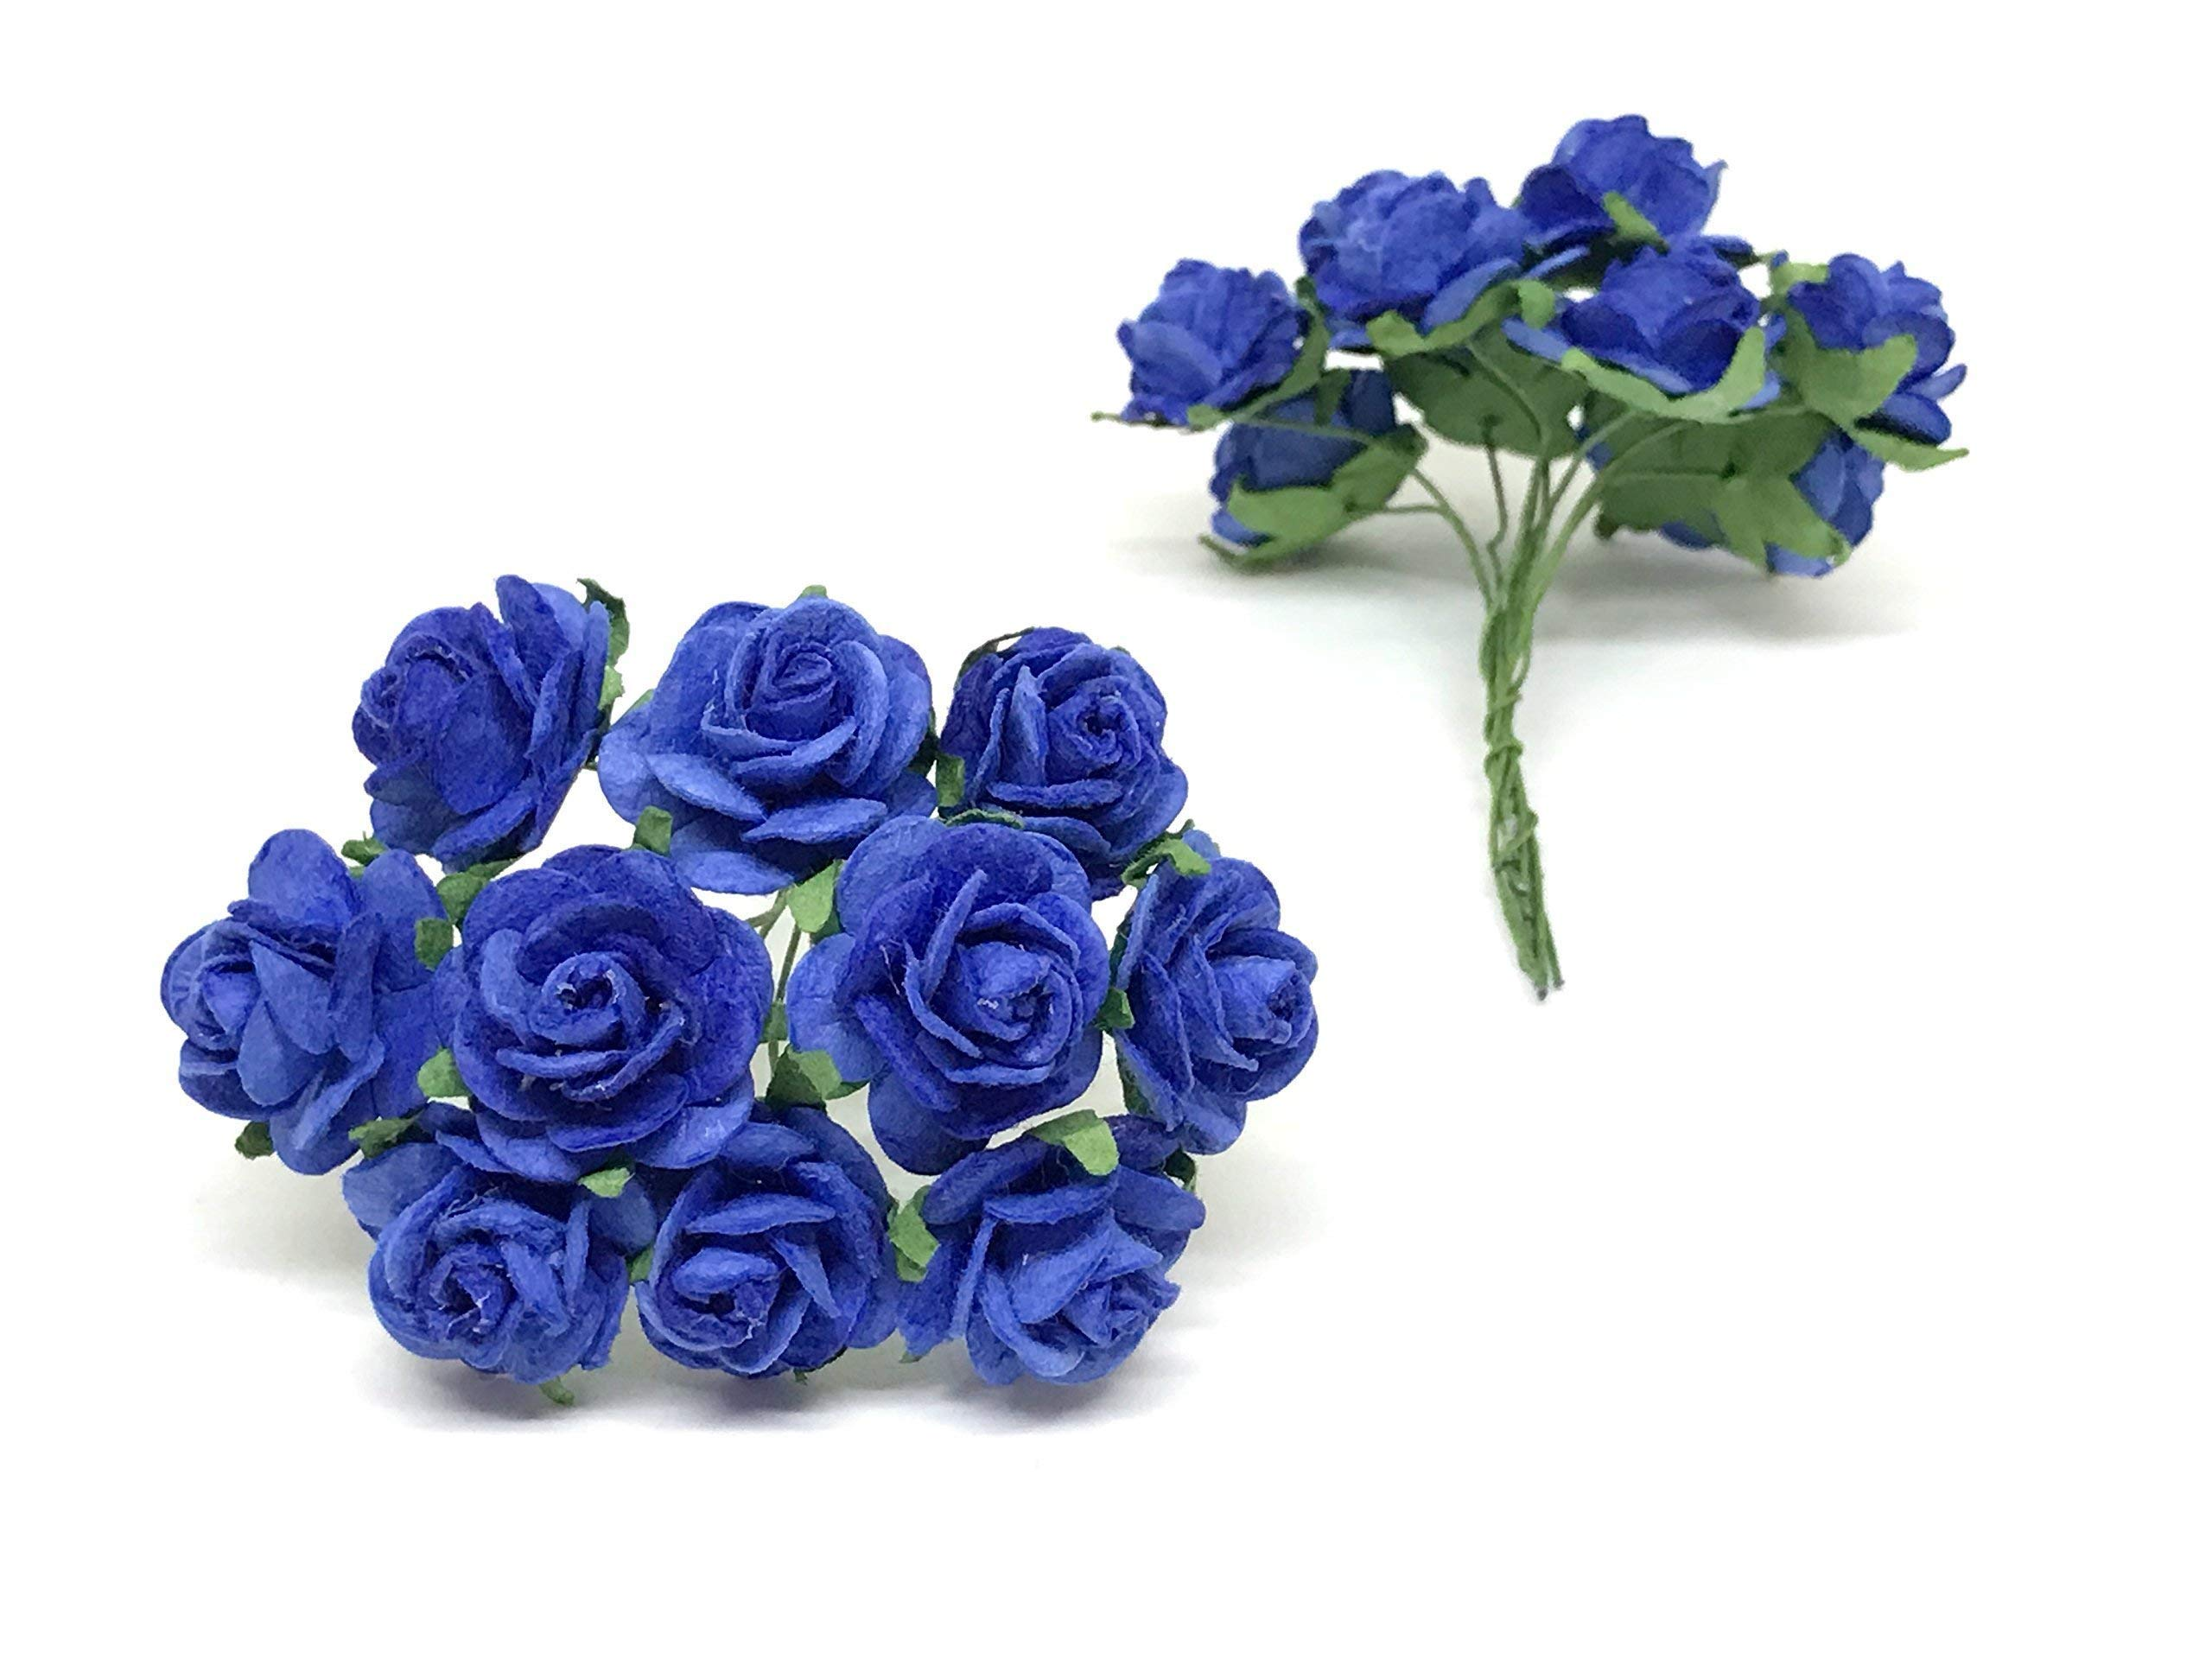 2cm-Royal-Blue-Paper-Flowers-Paper-Rose-Artificial-Flowers-Fake-Flowers-Artificial-Roses-Paper-Craft-Flowers-Paper-Rose-Flower-Mulberry-Paper-Flowers-25-Pieces